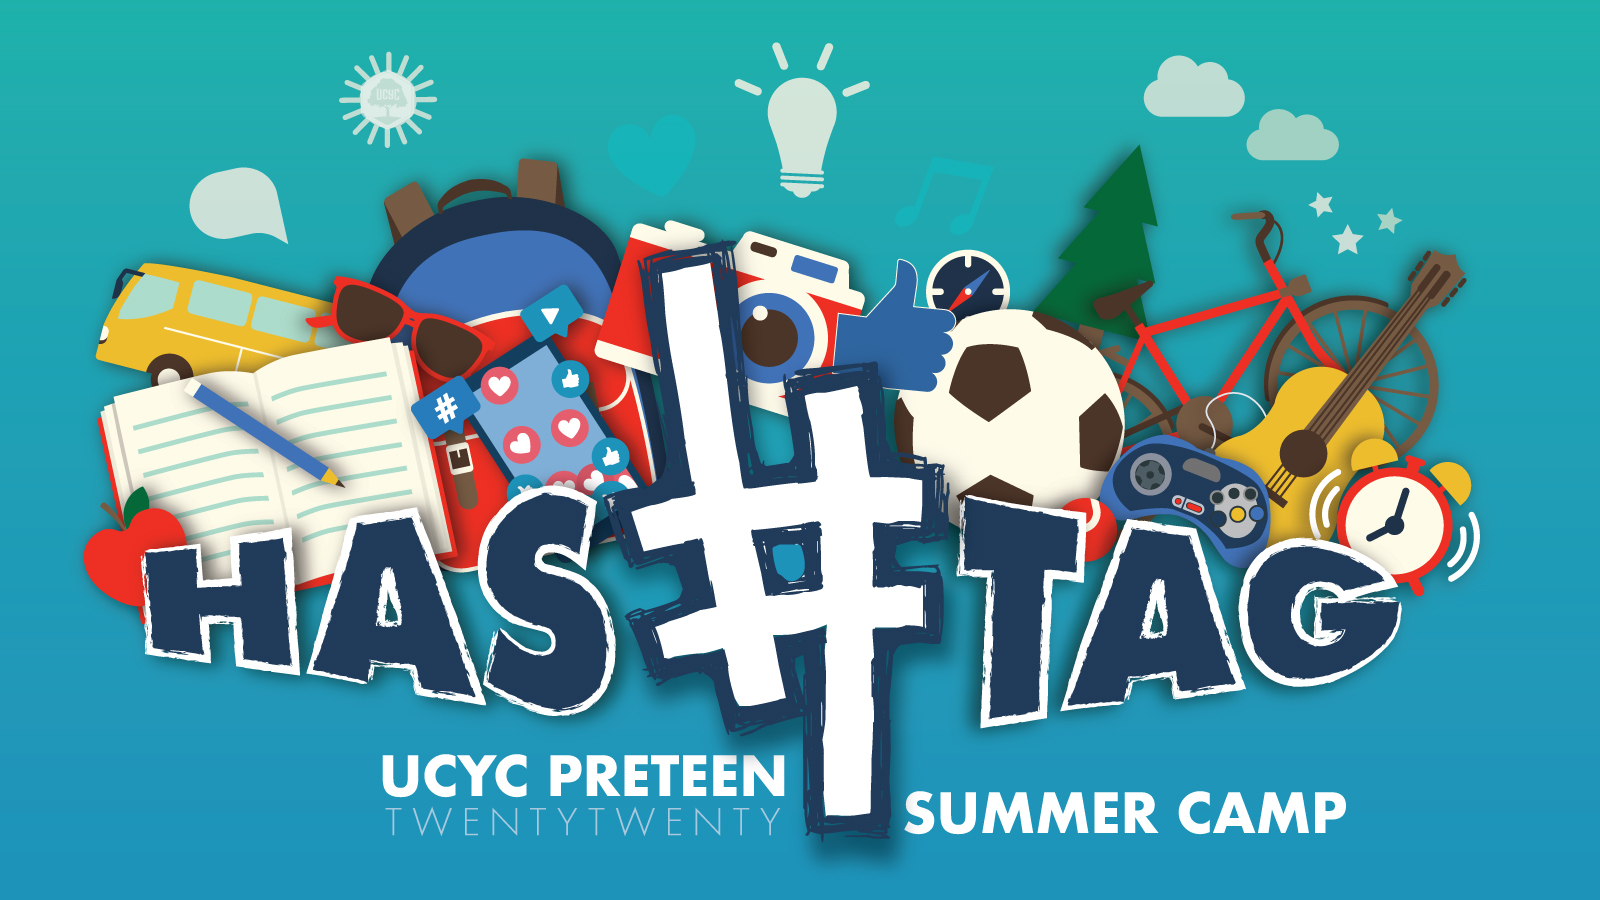 Image: UCYC 45 Camp 2020 (CANCELED)